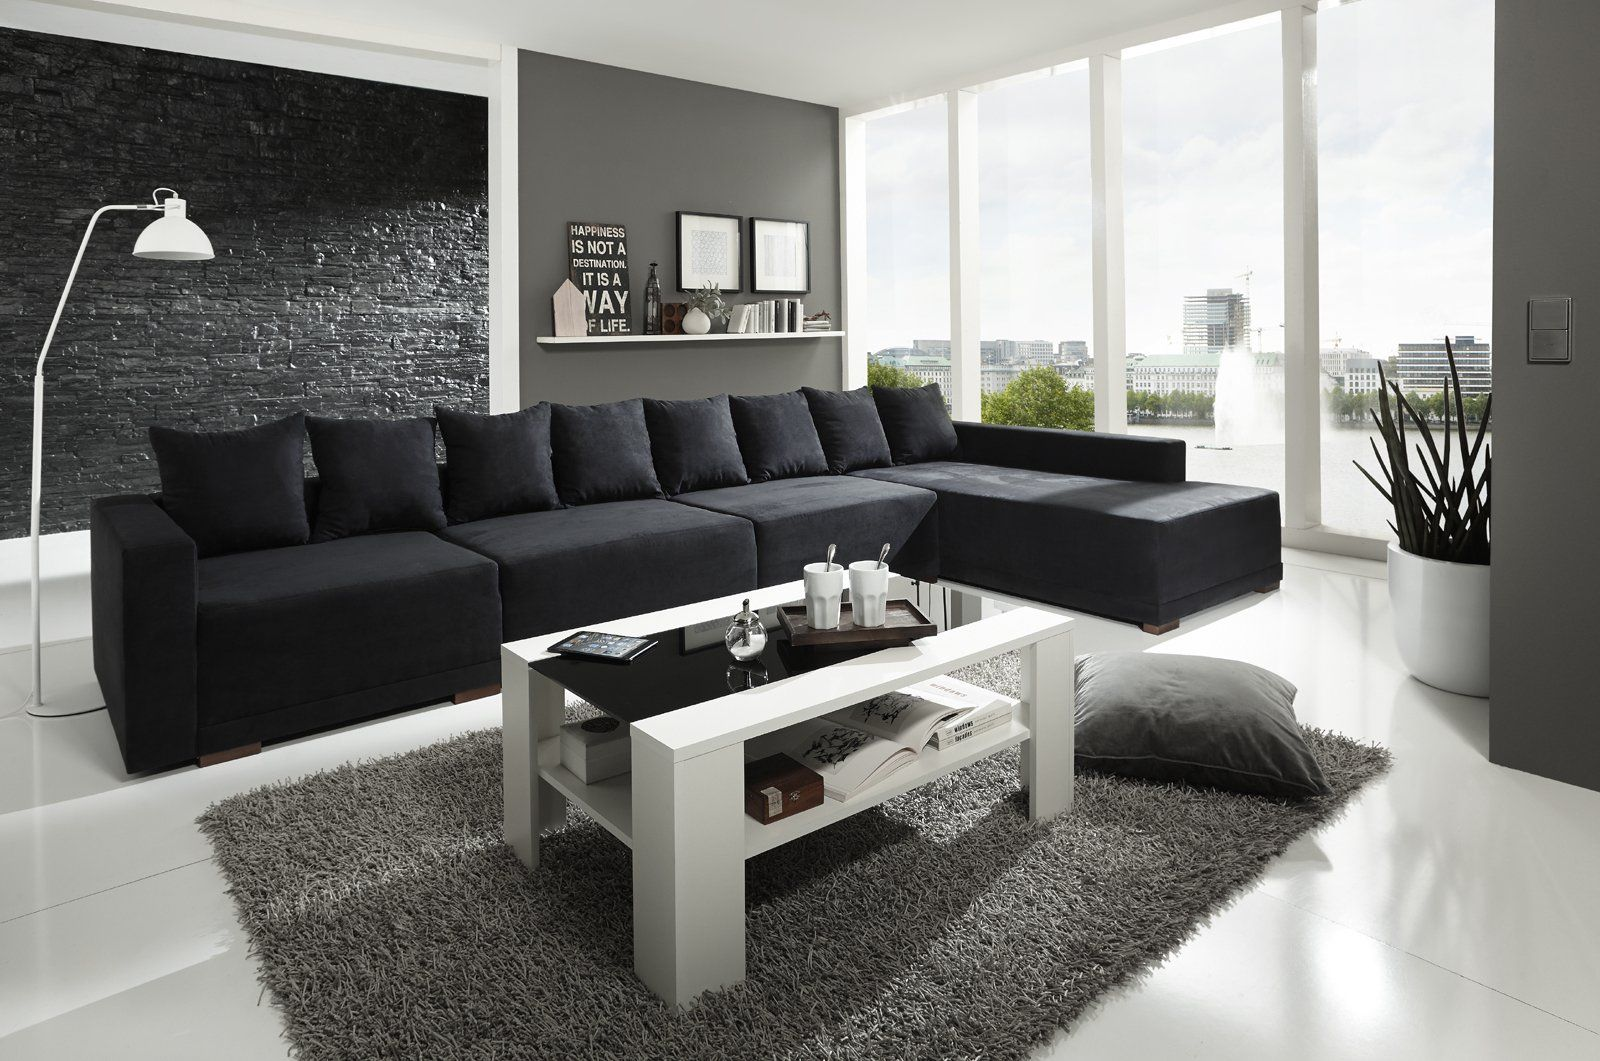 Wohnzimmer Einrichten Mit Schwarzer Couch Living Room Remodel Small Living Rooms Interior Decorating Living Room